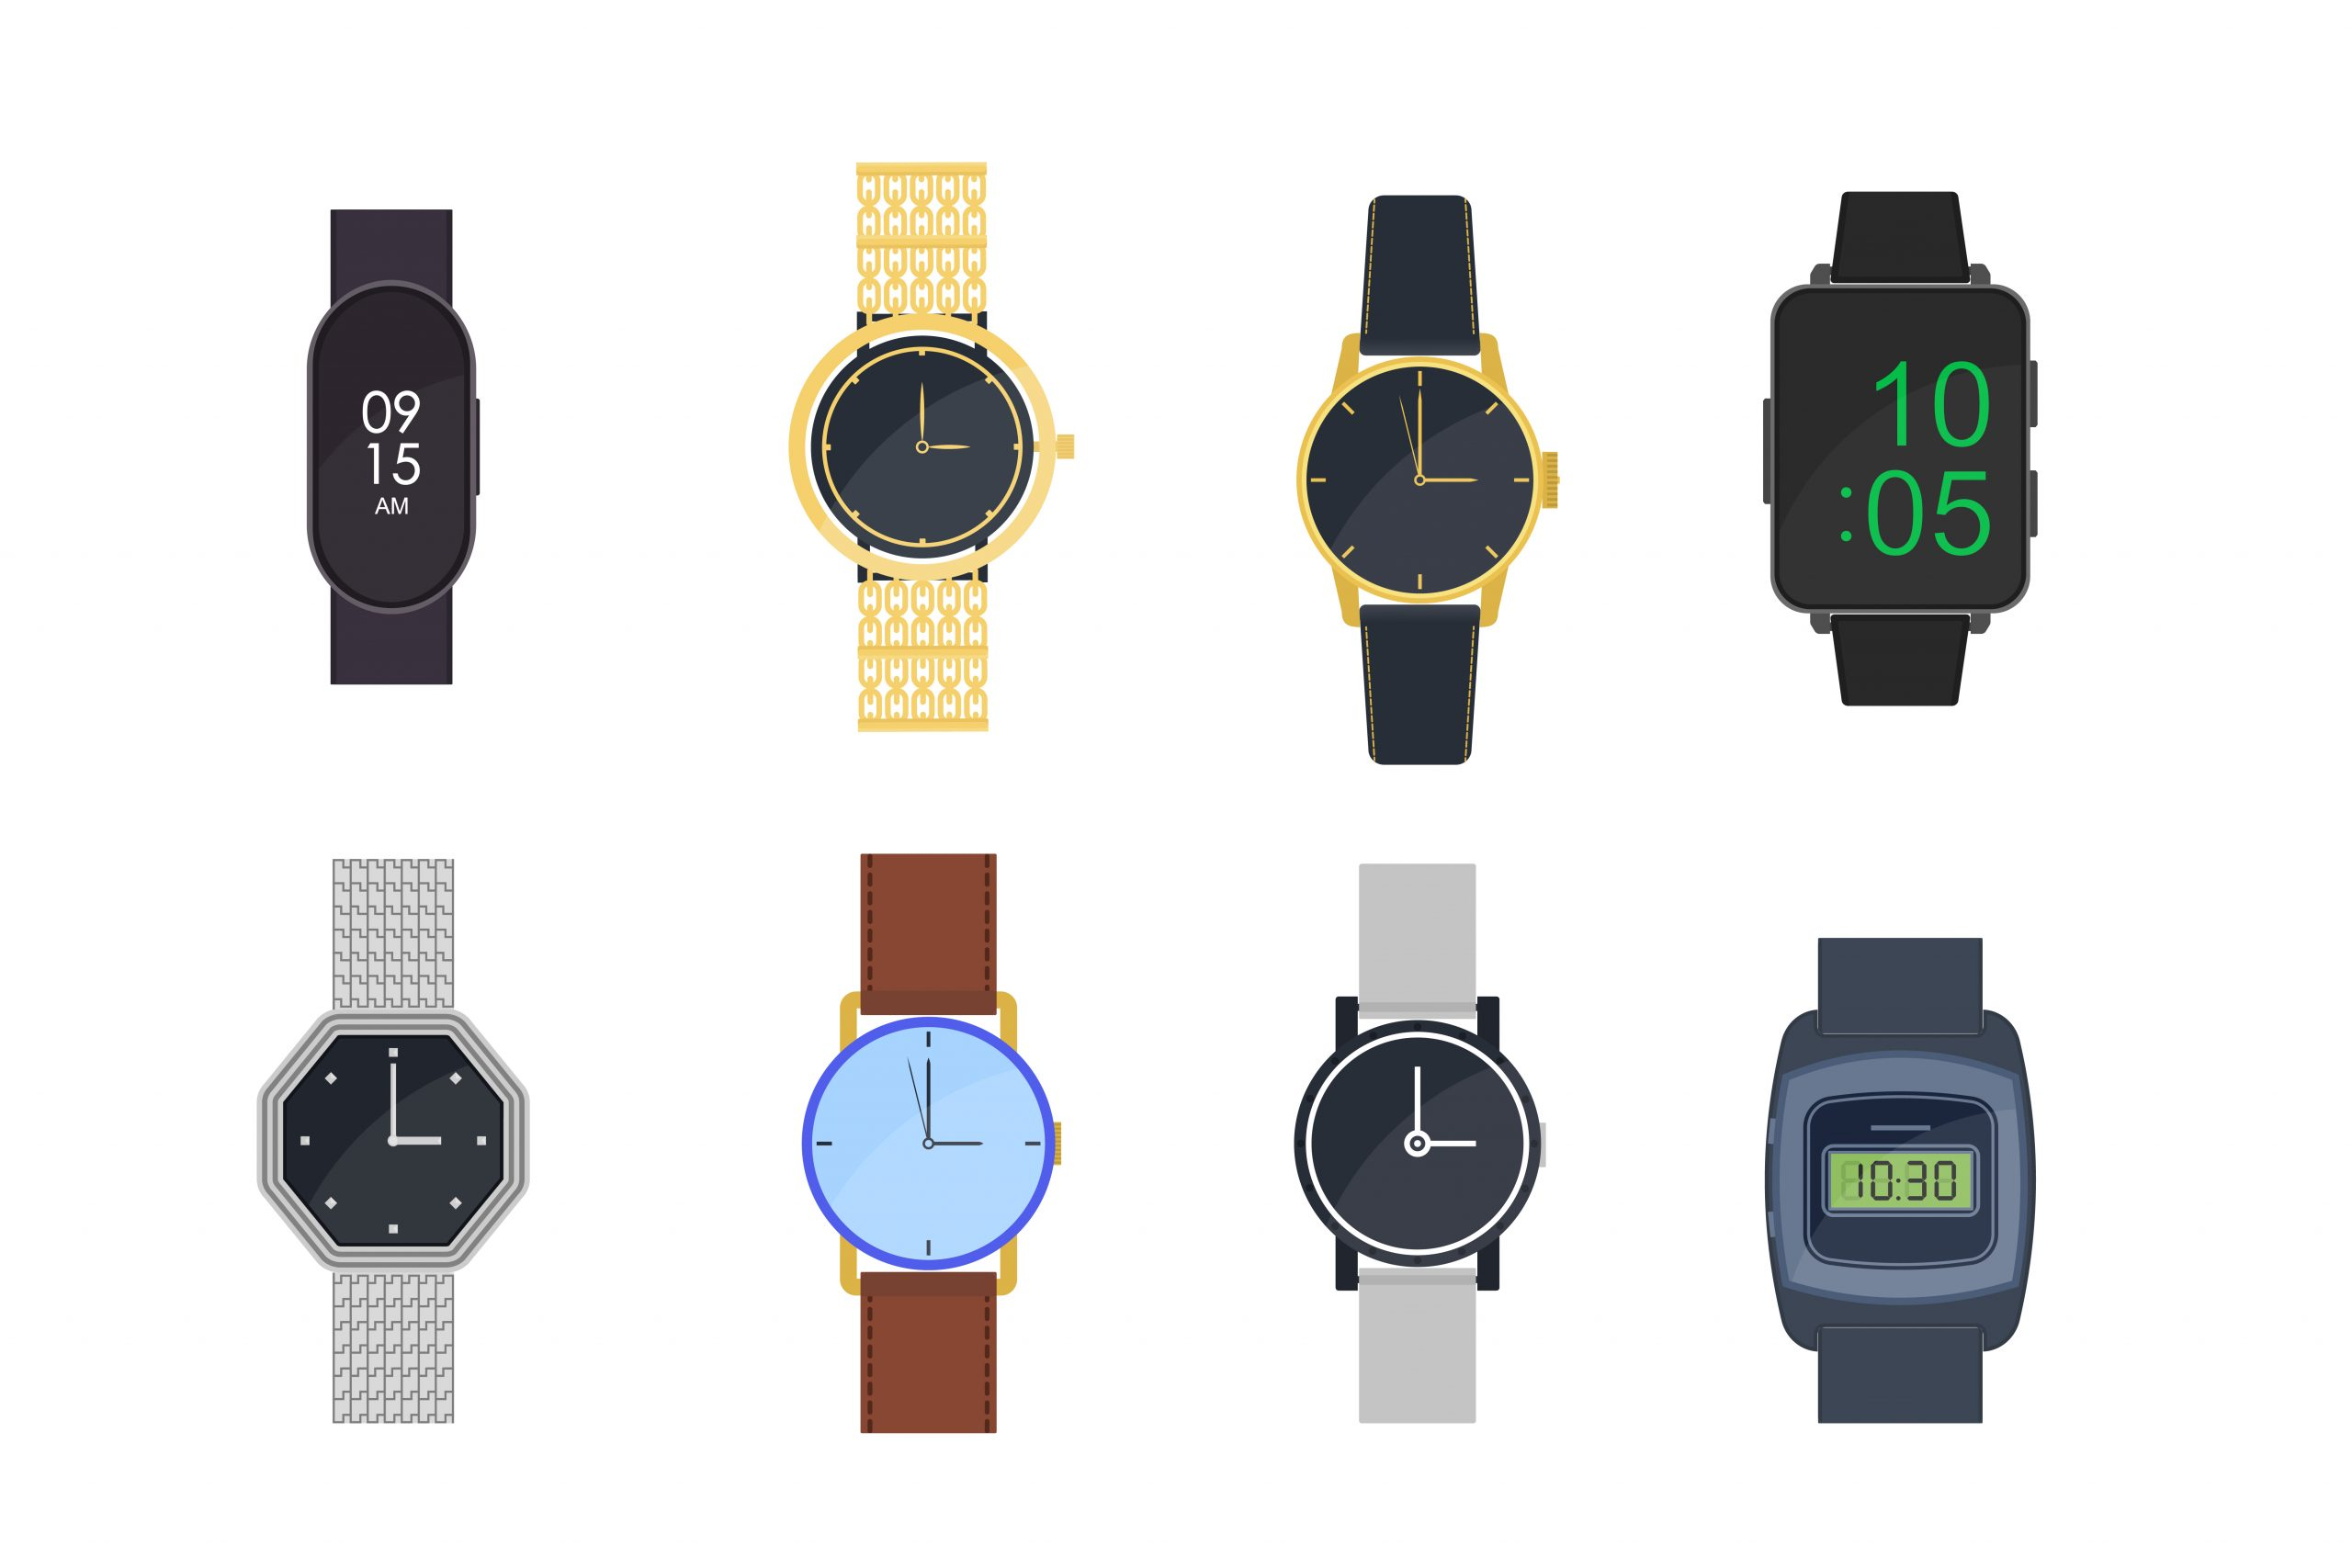 Icon graphic of men's watch styles for dress shirts